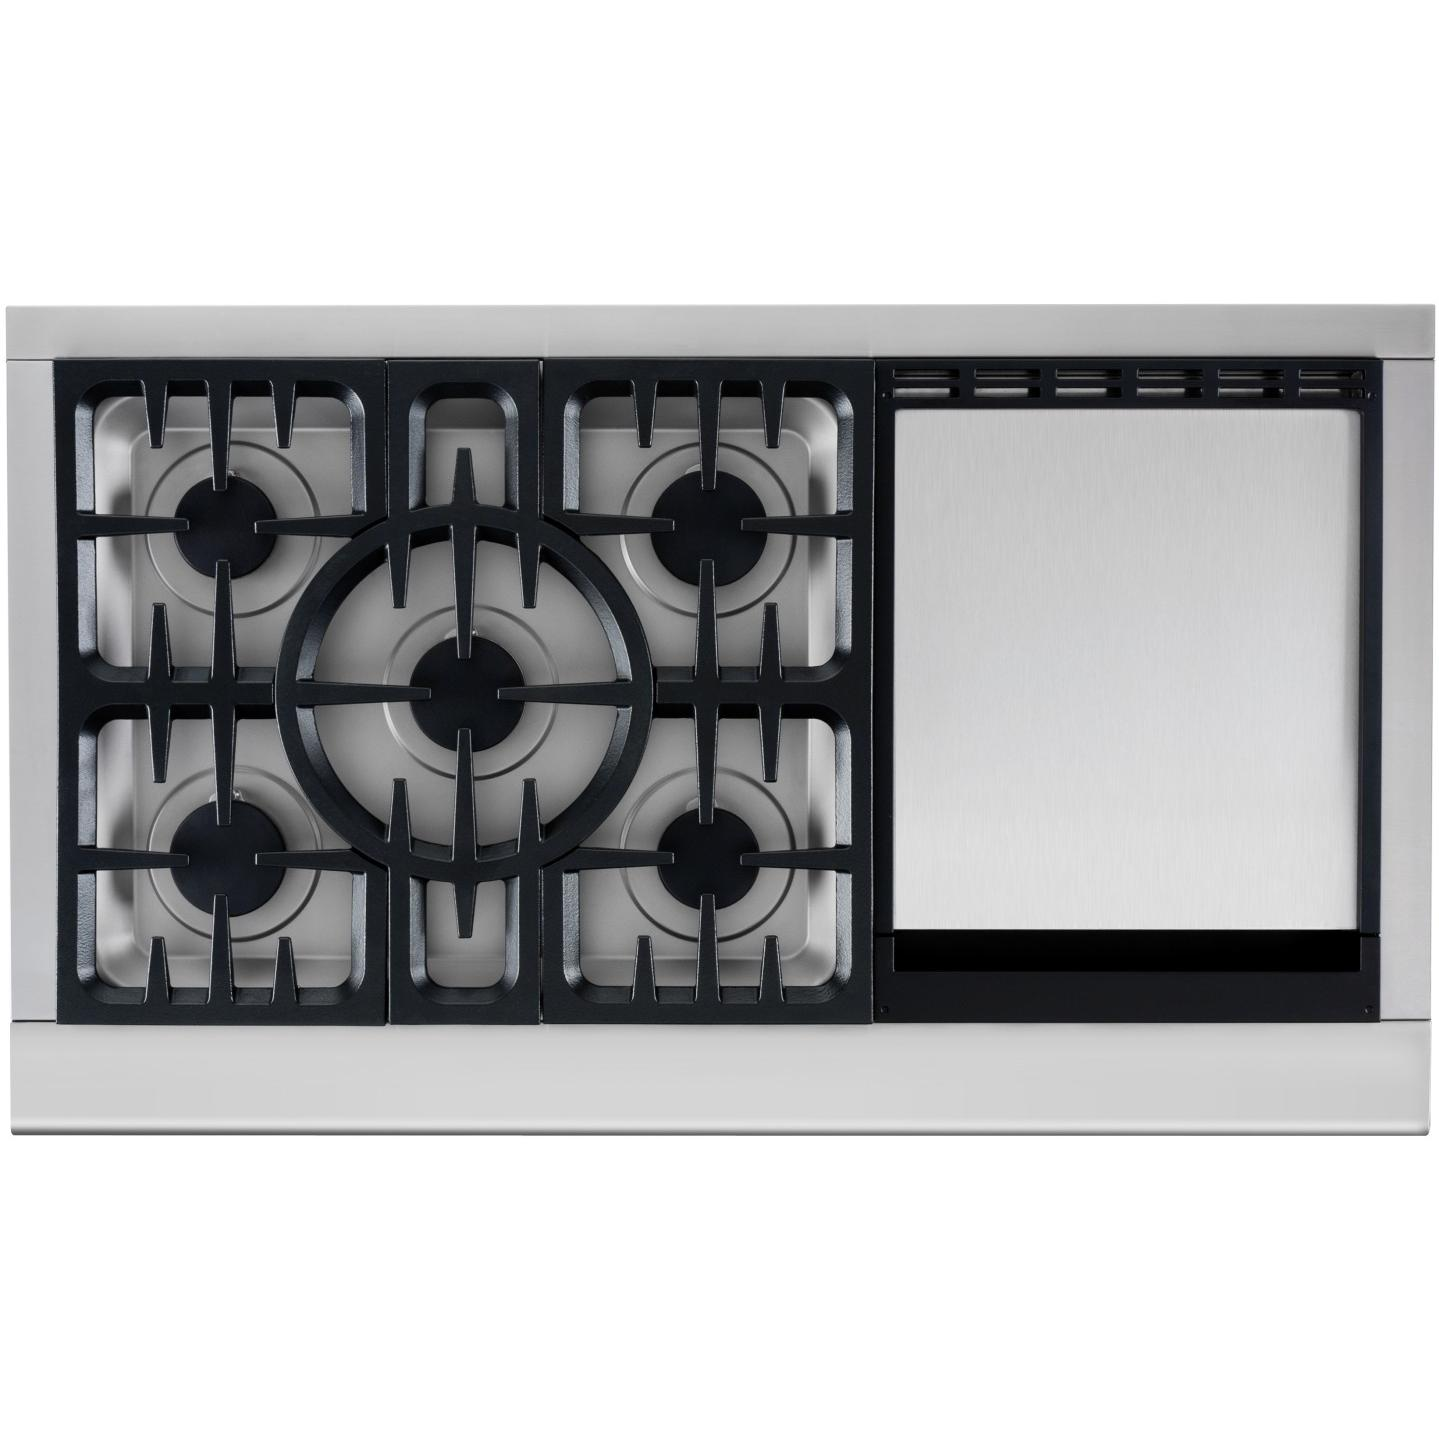 DCS CPU485GDL 48-Inch Propane Gas Cooktop With Griddle By Fisher Paykel